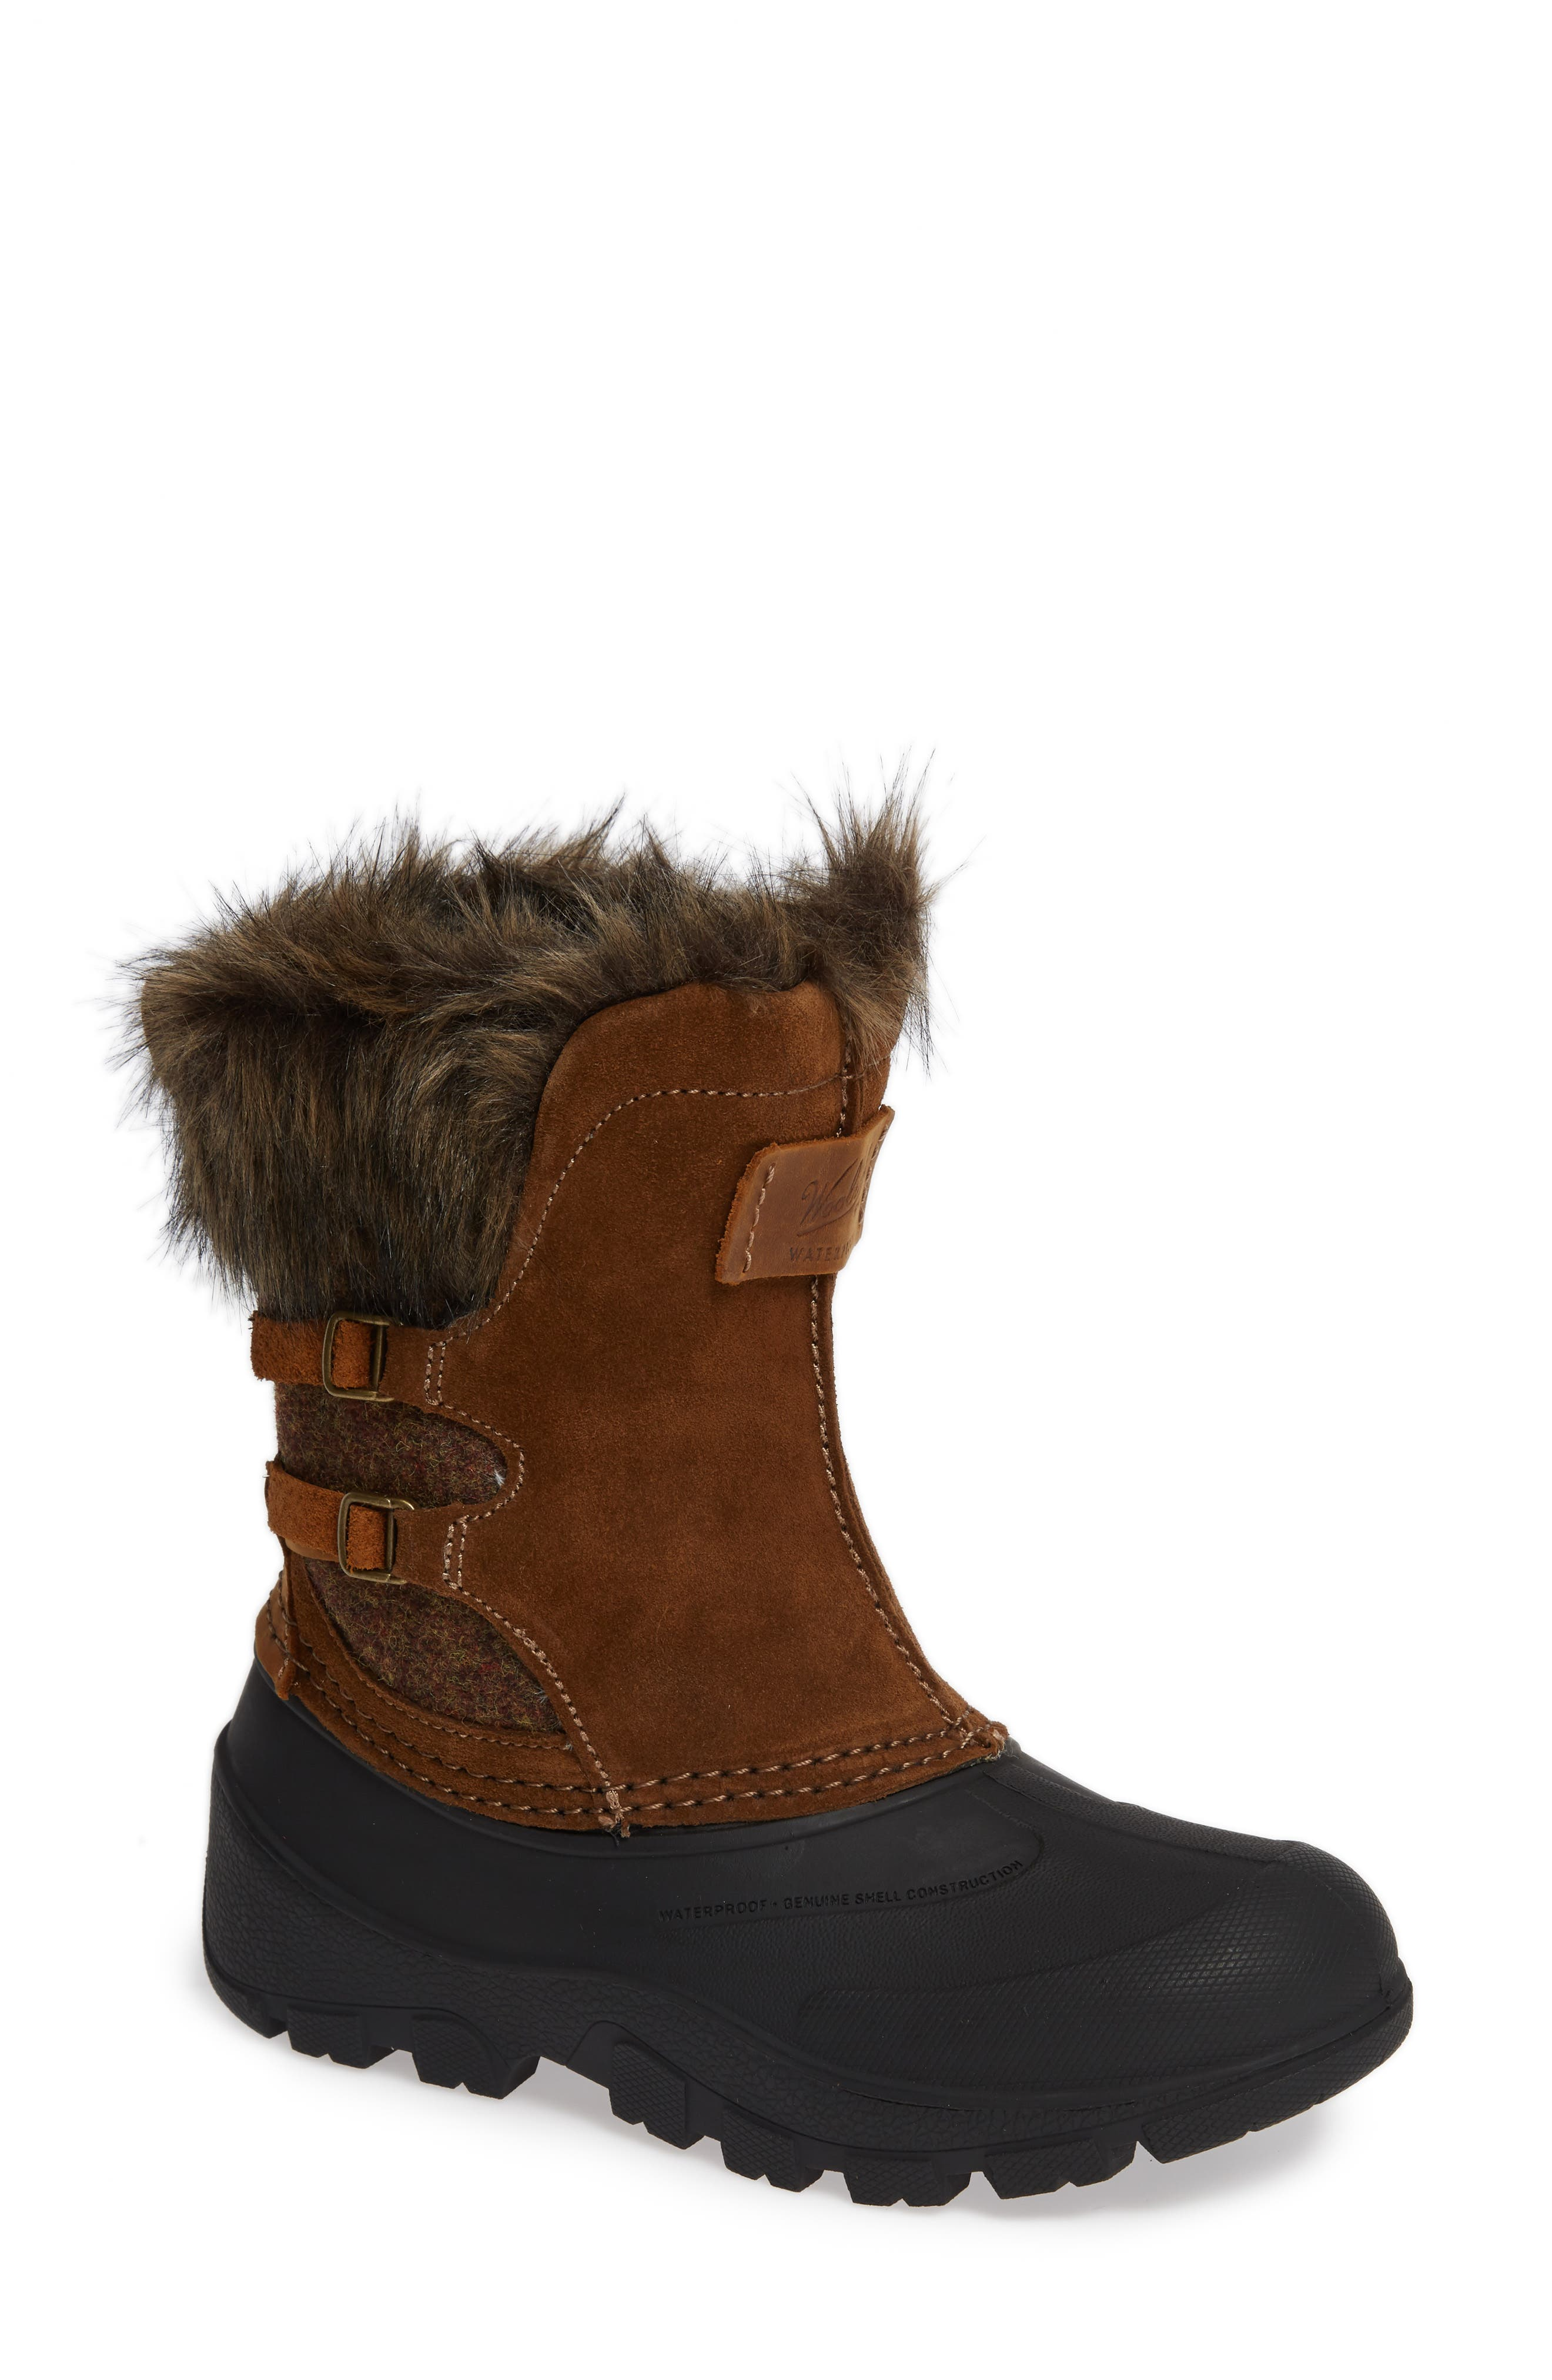 Icecat II Fully Woolly Waterproof Insulated Winter Boot,                             Main thumbnail 1, color,                             DACHSHUND WOOL